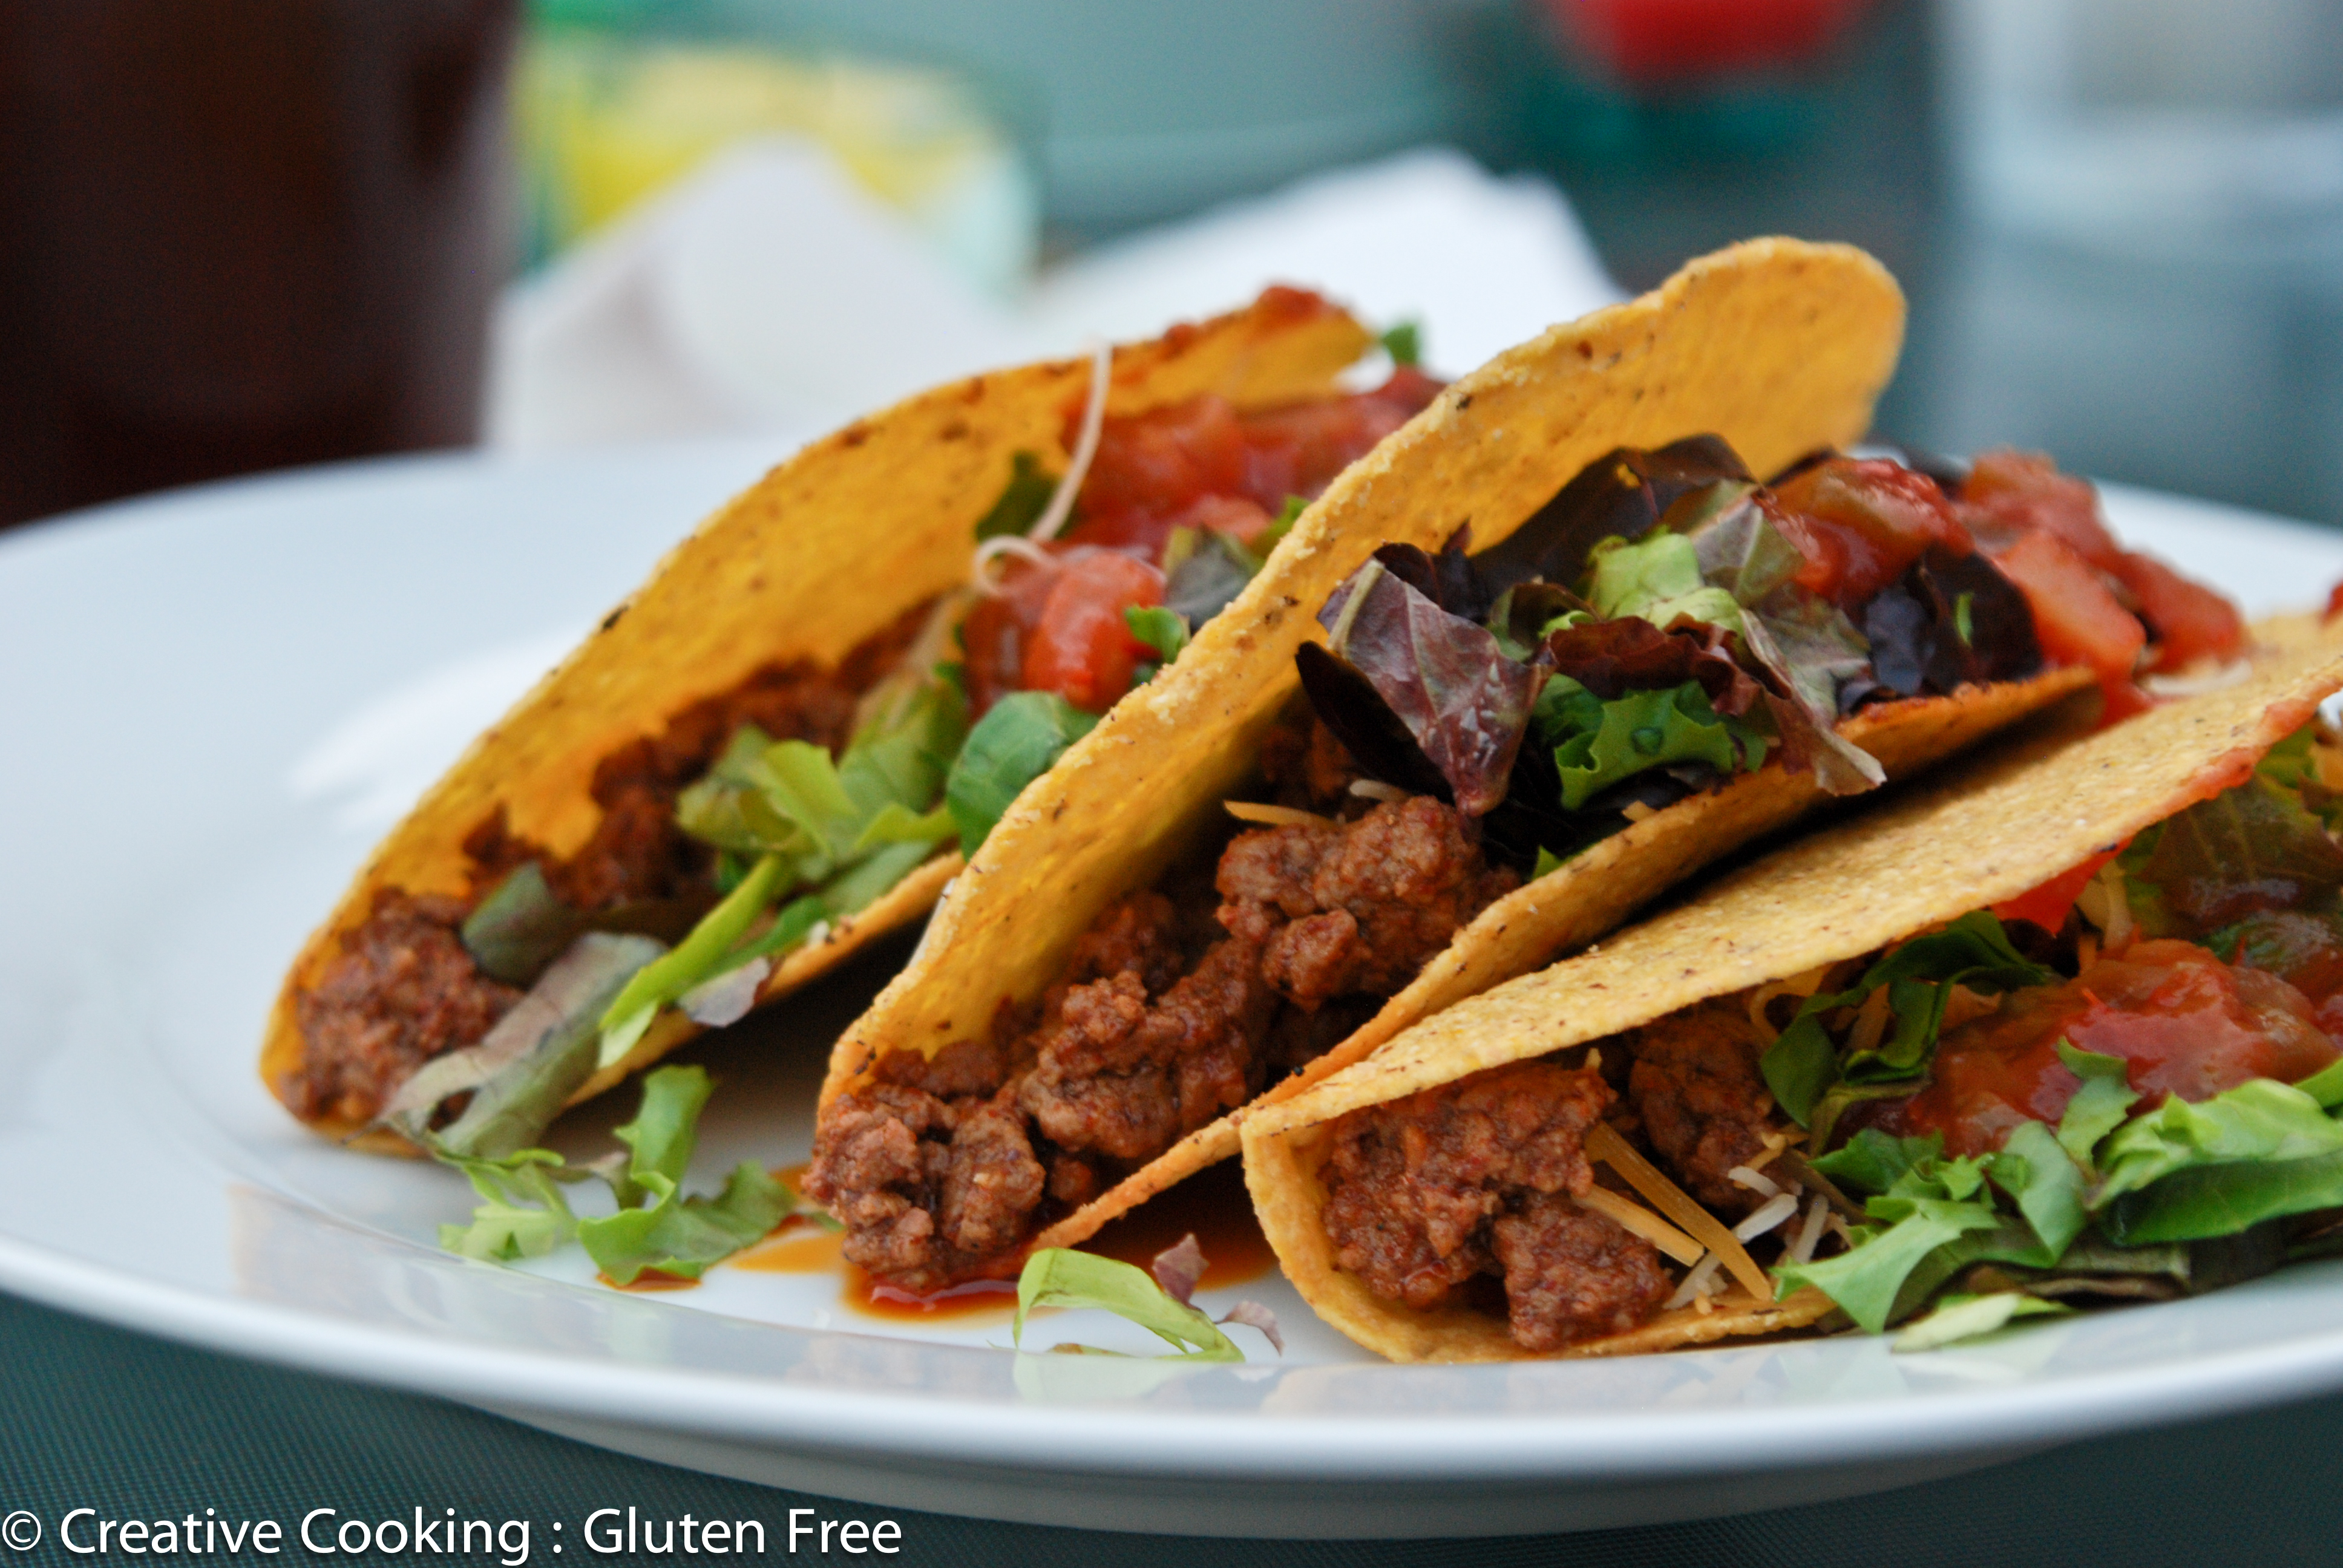 Tacos w mccormick s seasoning for About mexican cuisine